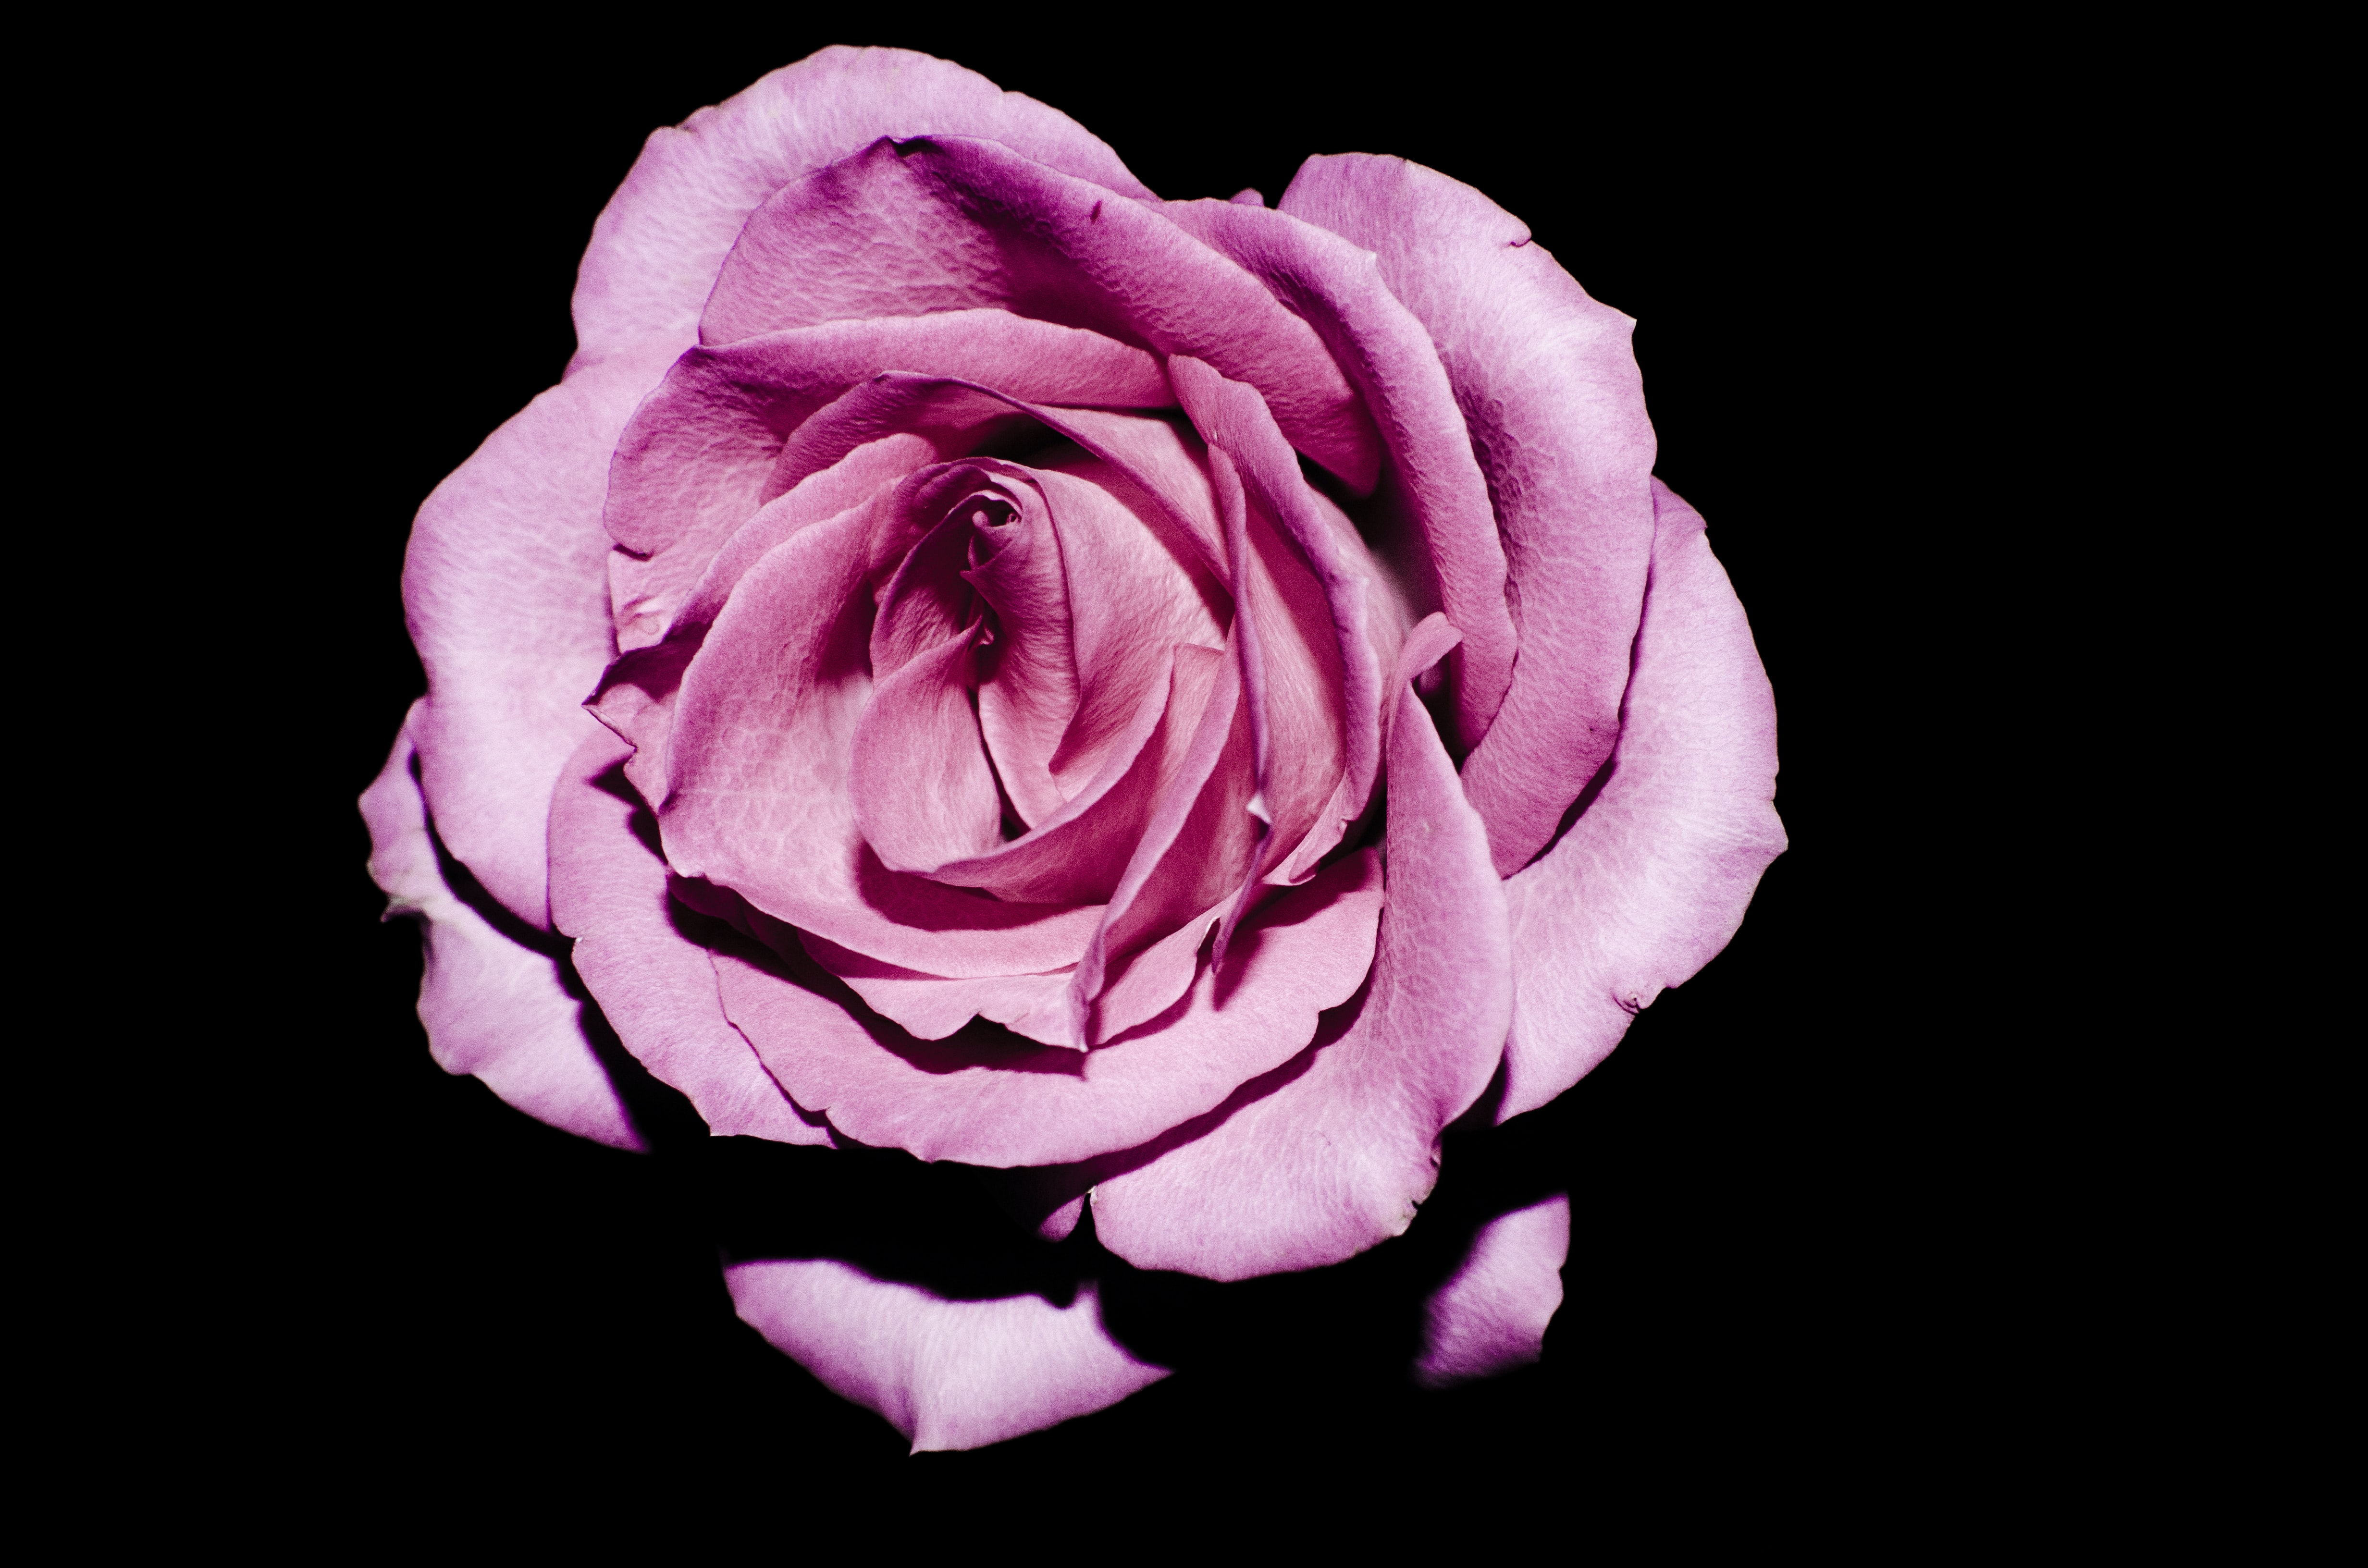 focus photography of pink rose